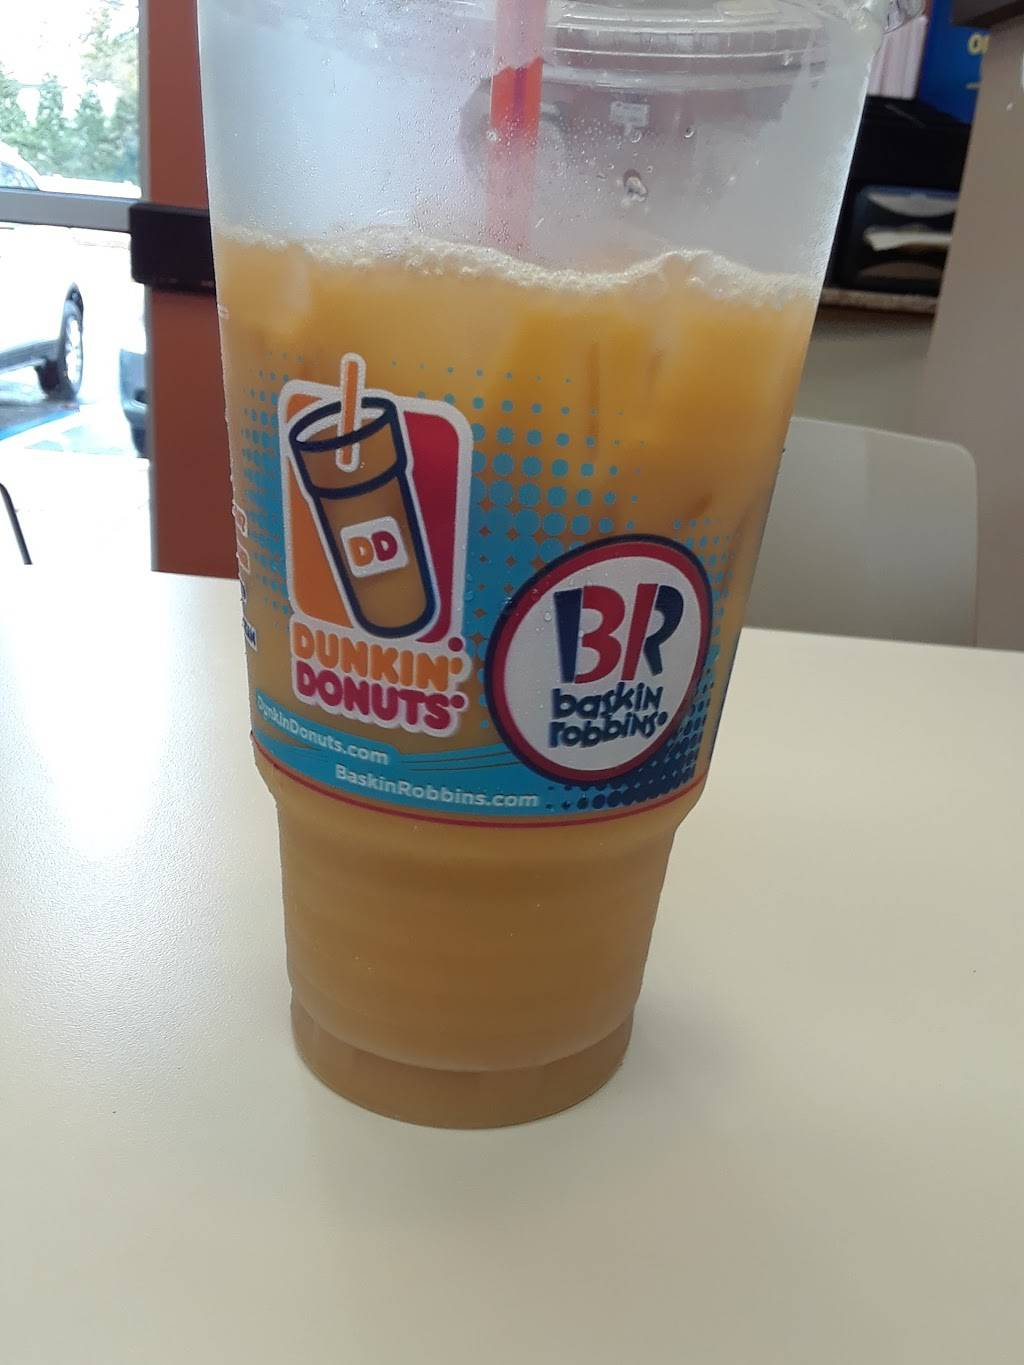 Dunkin Donuts   cafe   587 Old Country Rd, Plainview, NY 11803, USA   5164338128 OR +1 516-433-8128